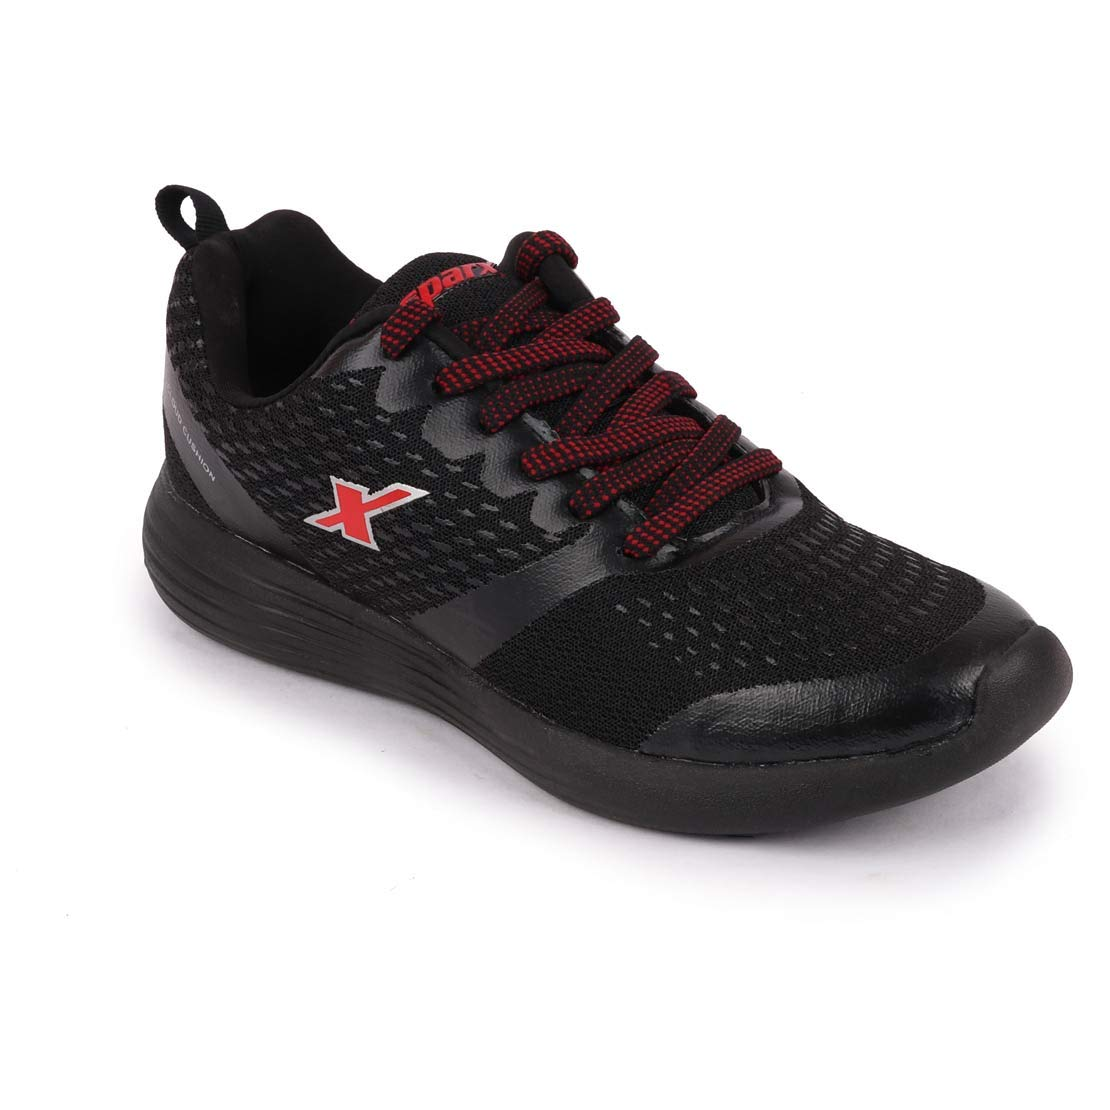 Sparx Men's Sports Running Shoes-SM-469